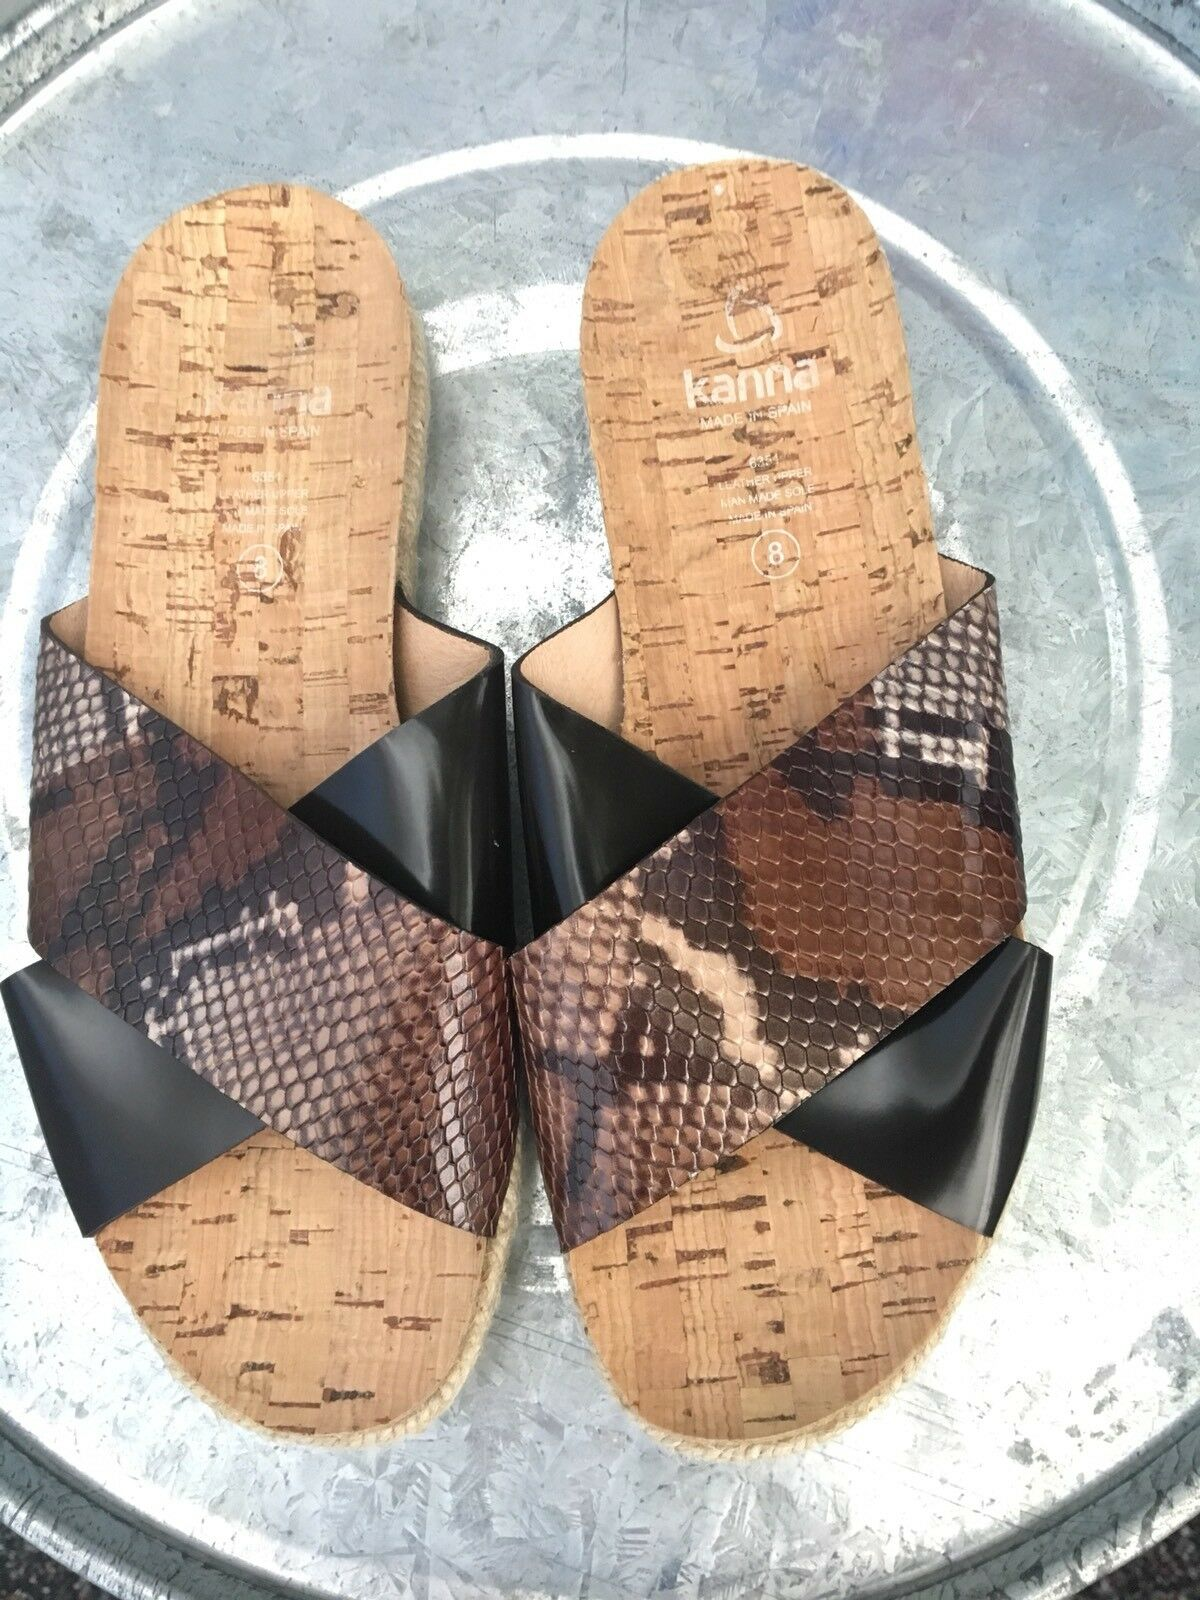 NEW $175 KANNA Sandals•Sz Espadrille Snakeskin Print Leather Sandals•Sz KANNA 8 51ceb3